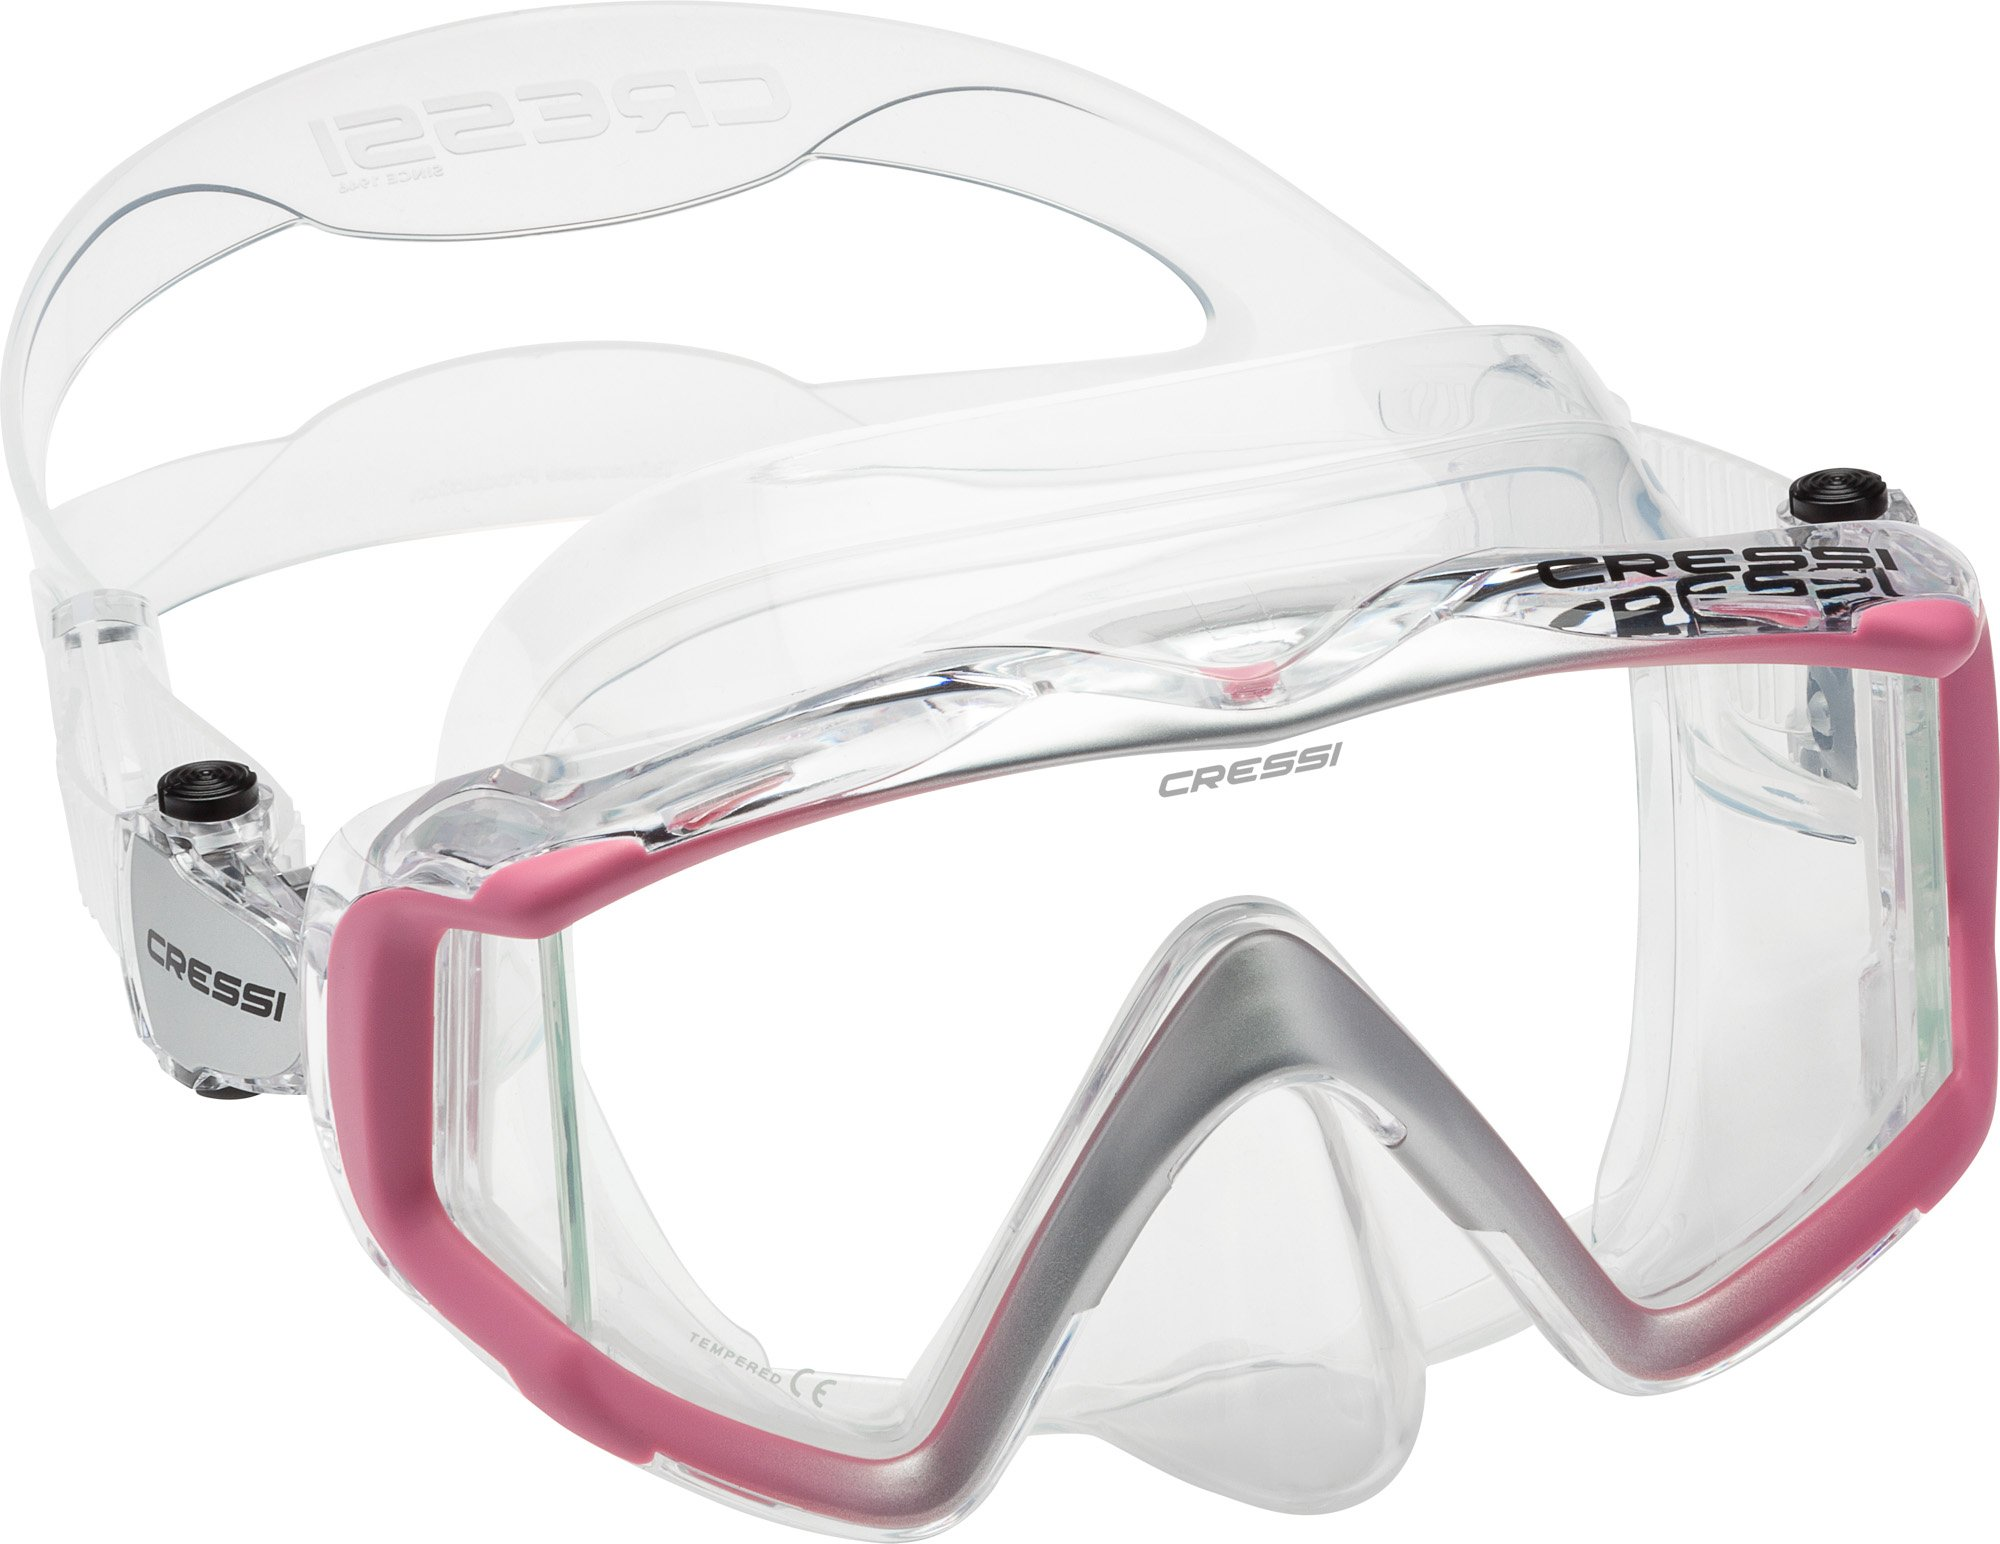 Cressi Liberty Triside Spe Diving Mask, Clear/Pink/Silver